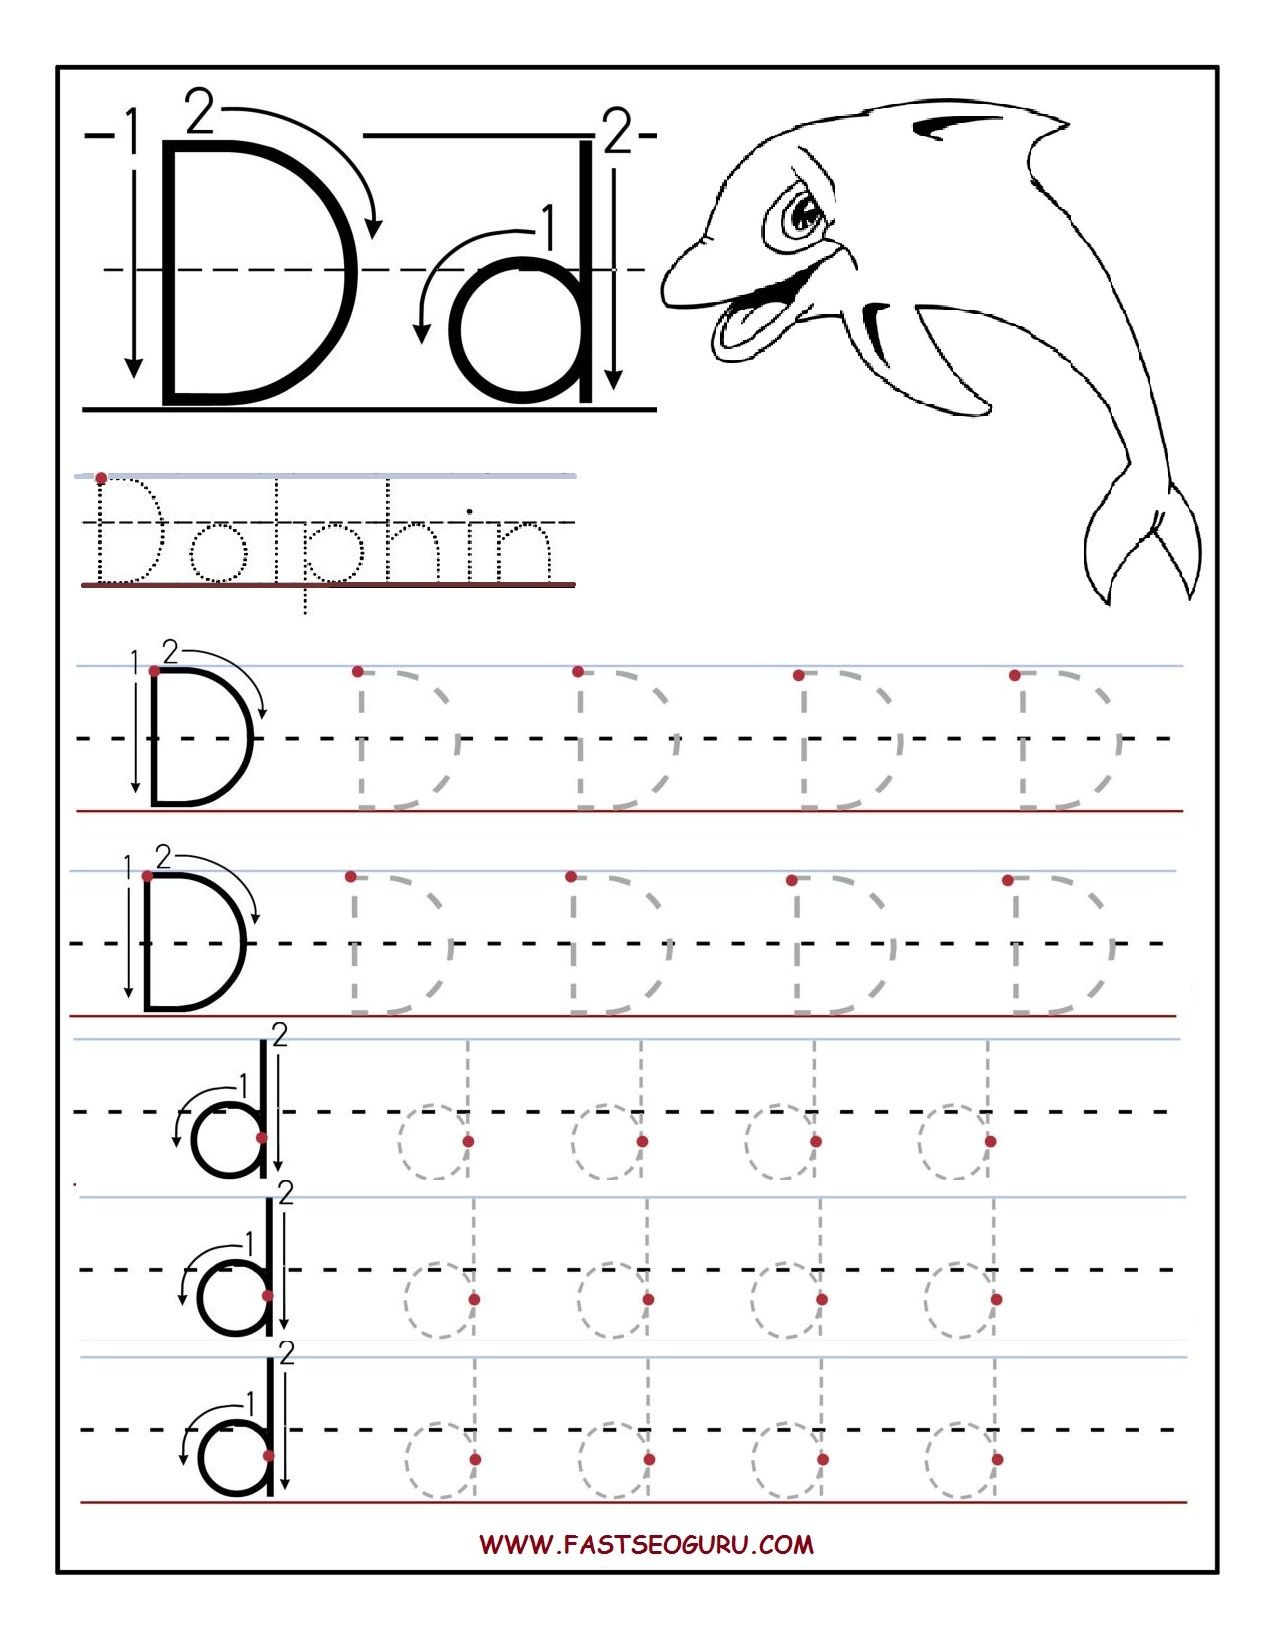 Worksheet Letter Tracing Worksheets 1000 images about worksheets on pinterest alphabet letters and number worksheets